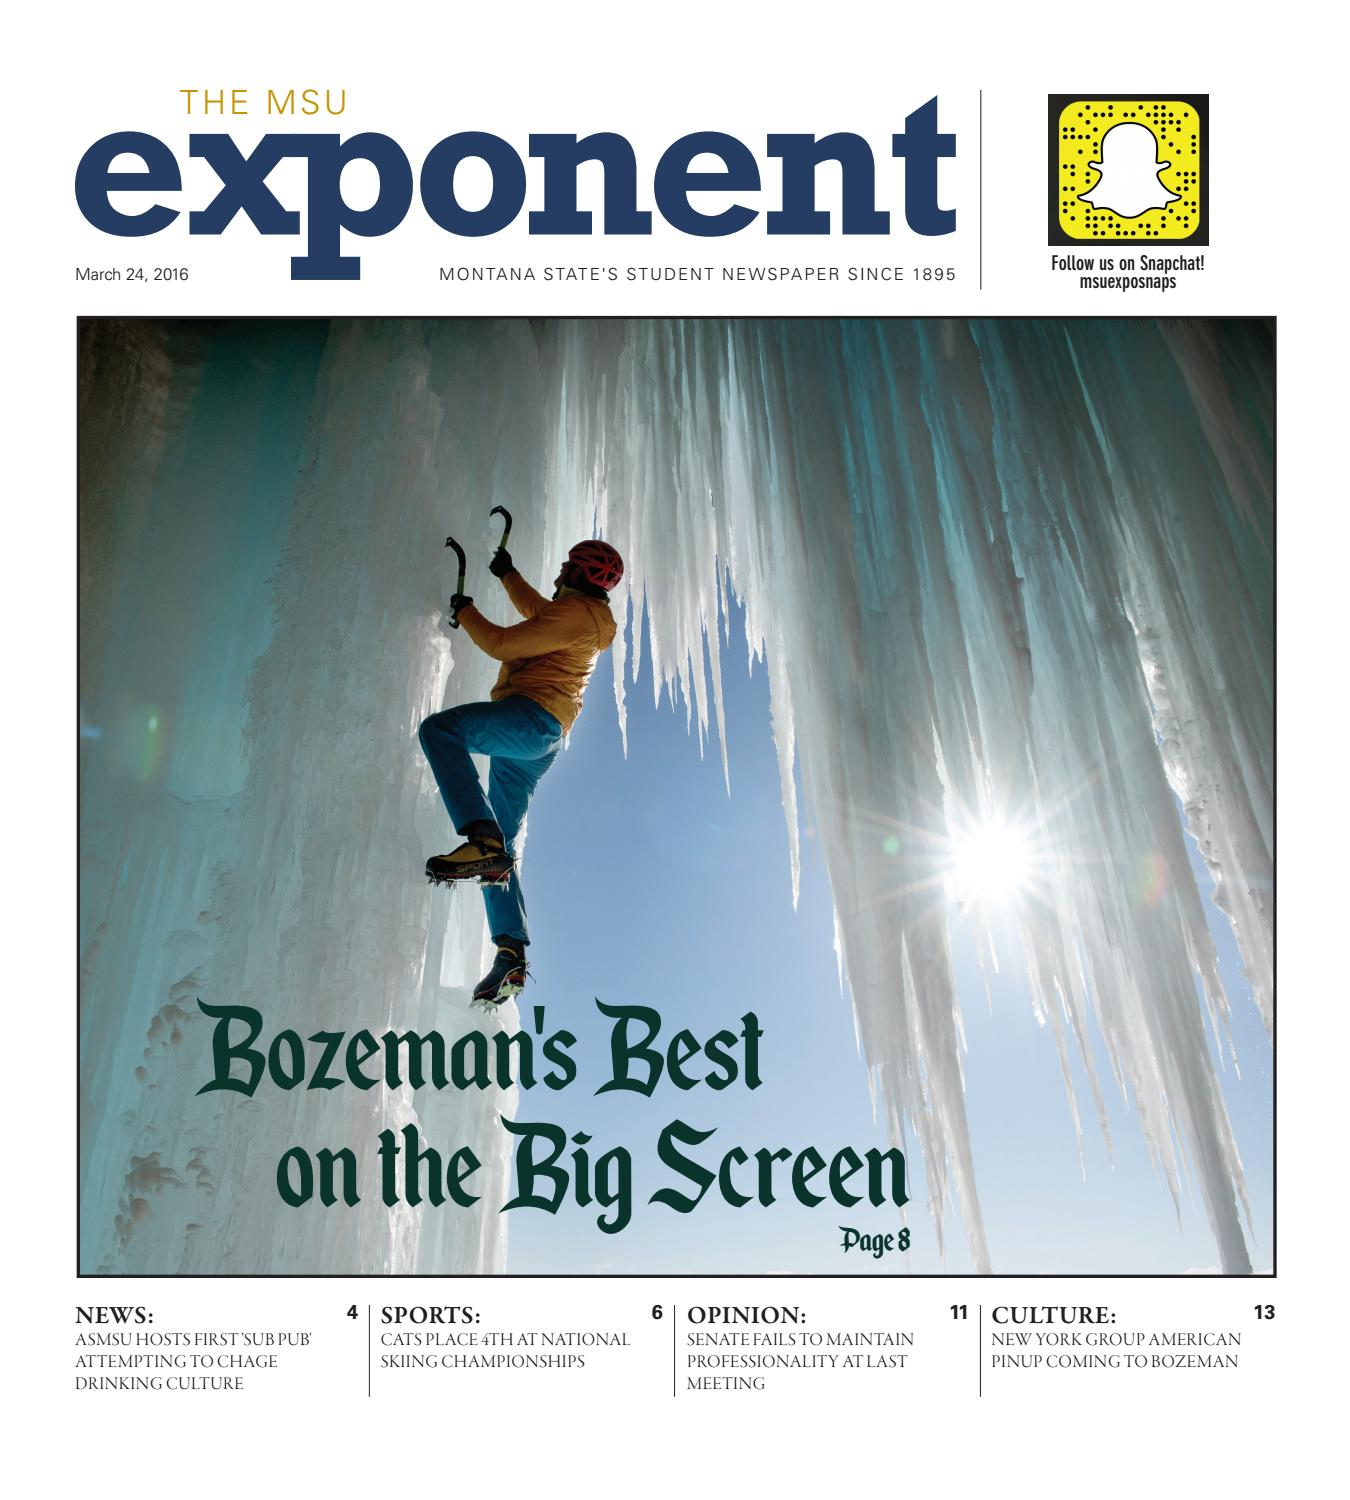 MSU Exponent 03/24/2016 Edition by The MSU Exponent - issuu